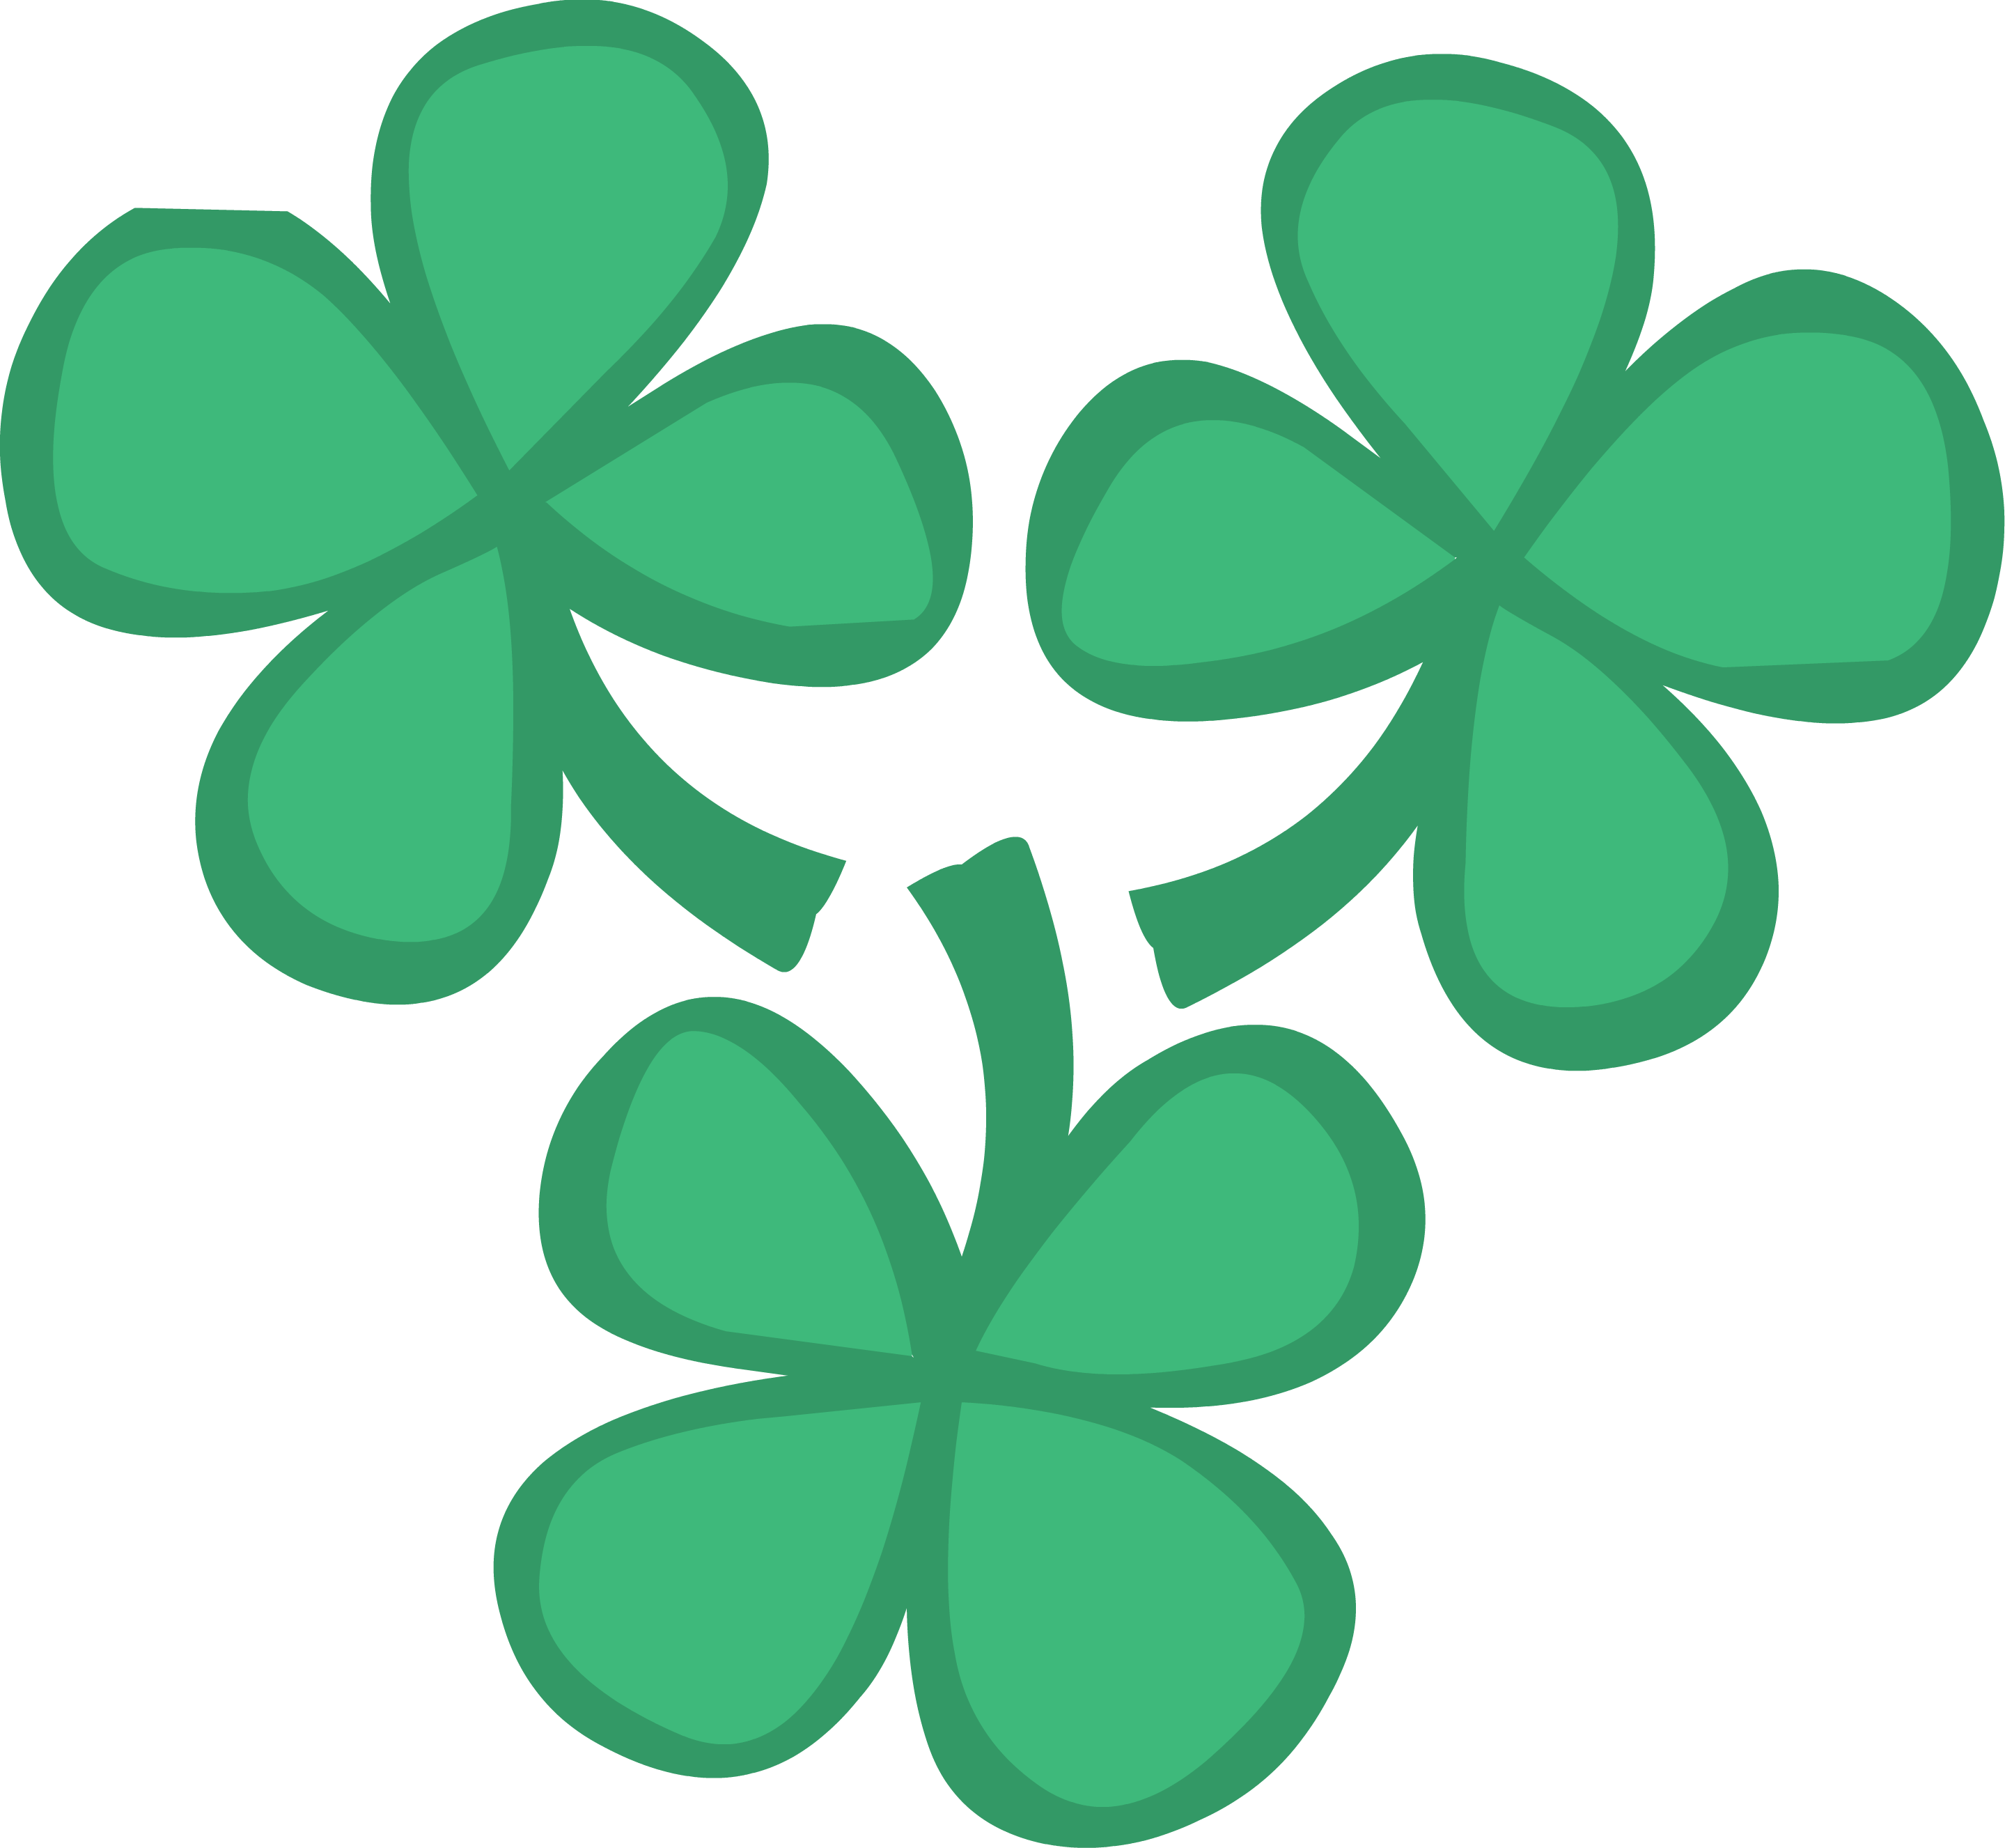 Lucky clover png. My little pony friendship